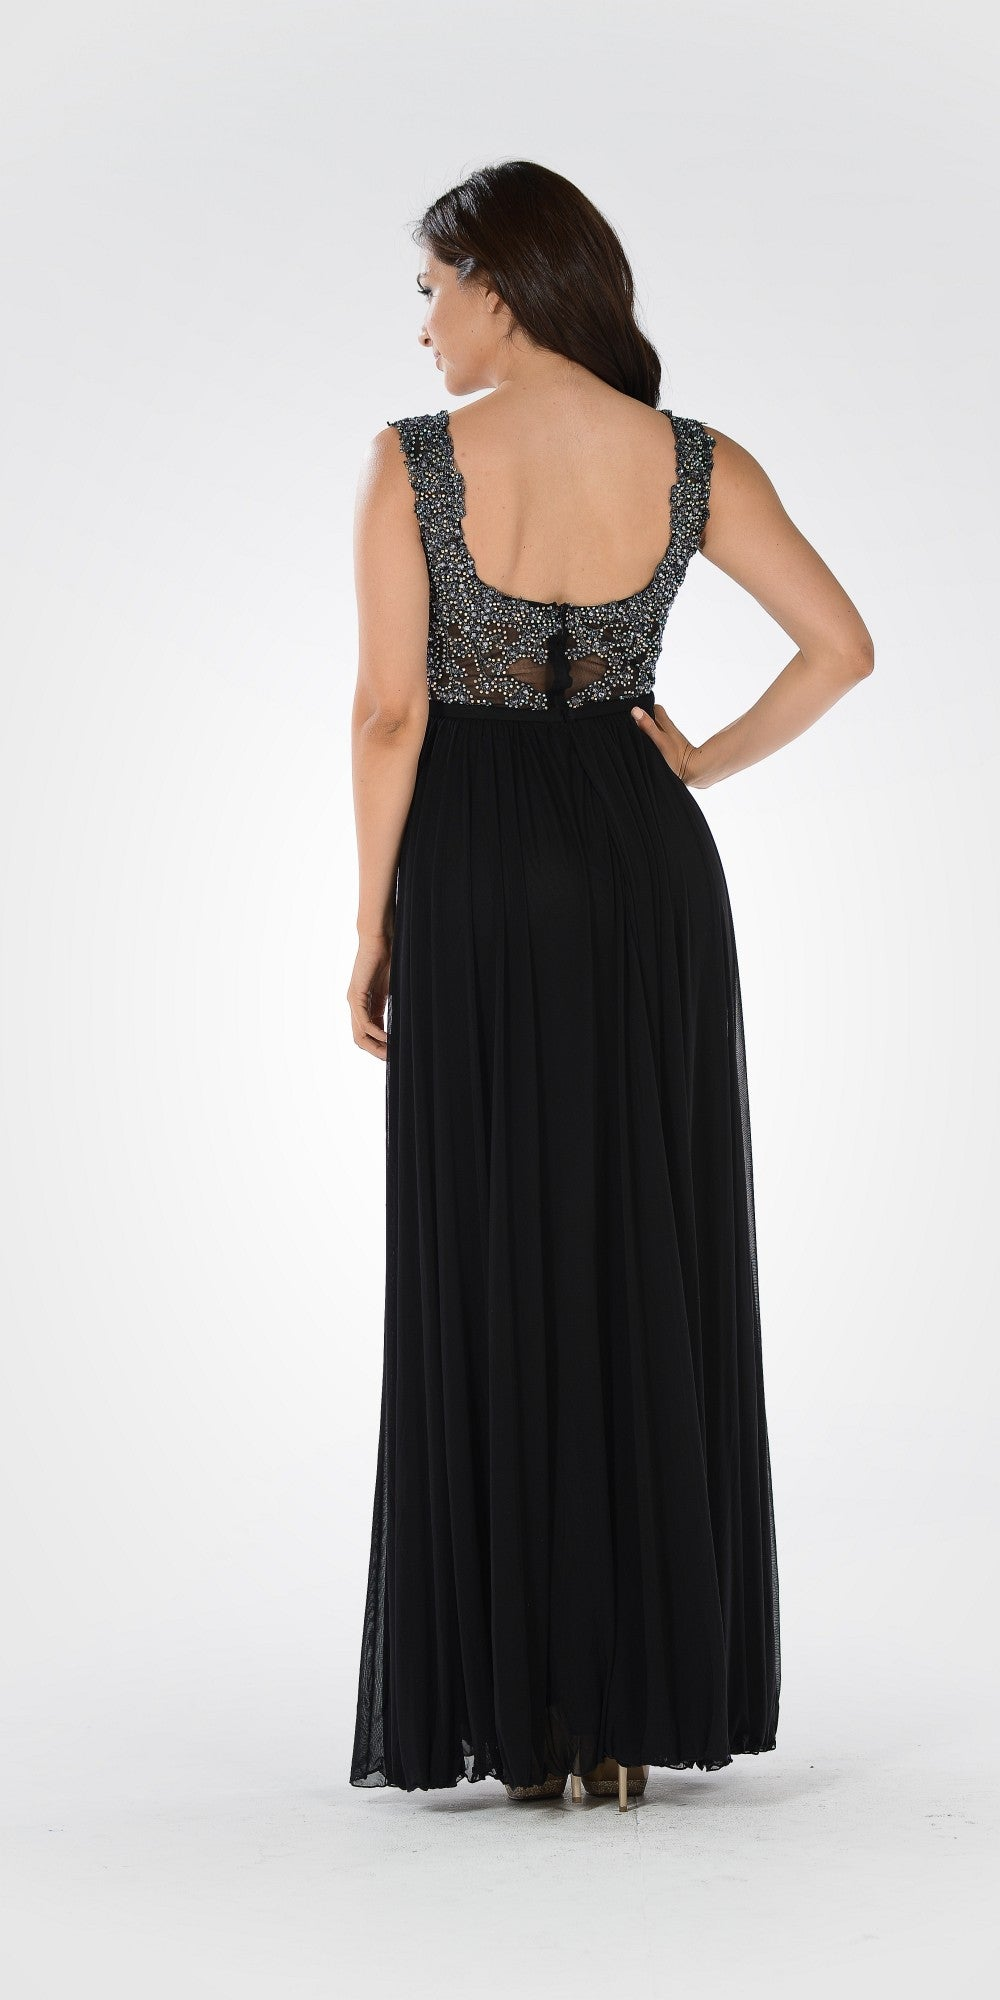 Lace Bead Appliqued Bodice Floor Length Formal Dress V-Neck Black